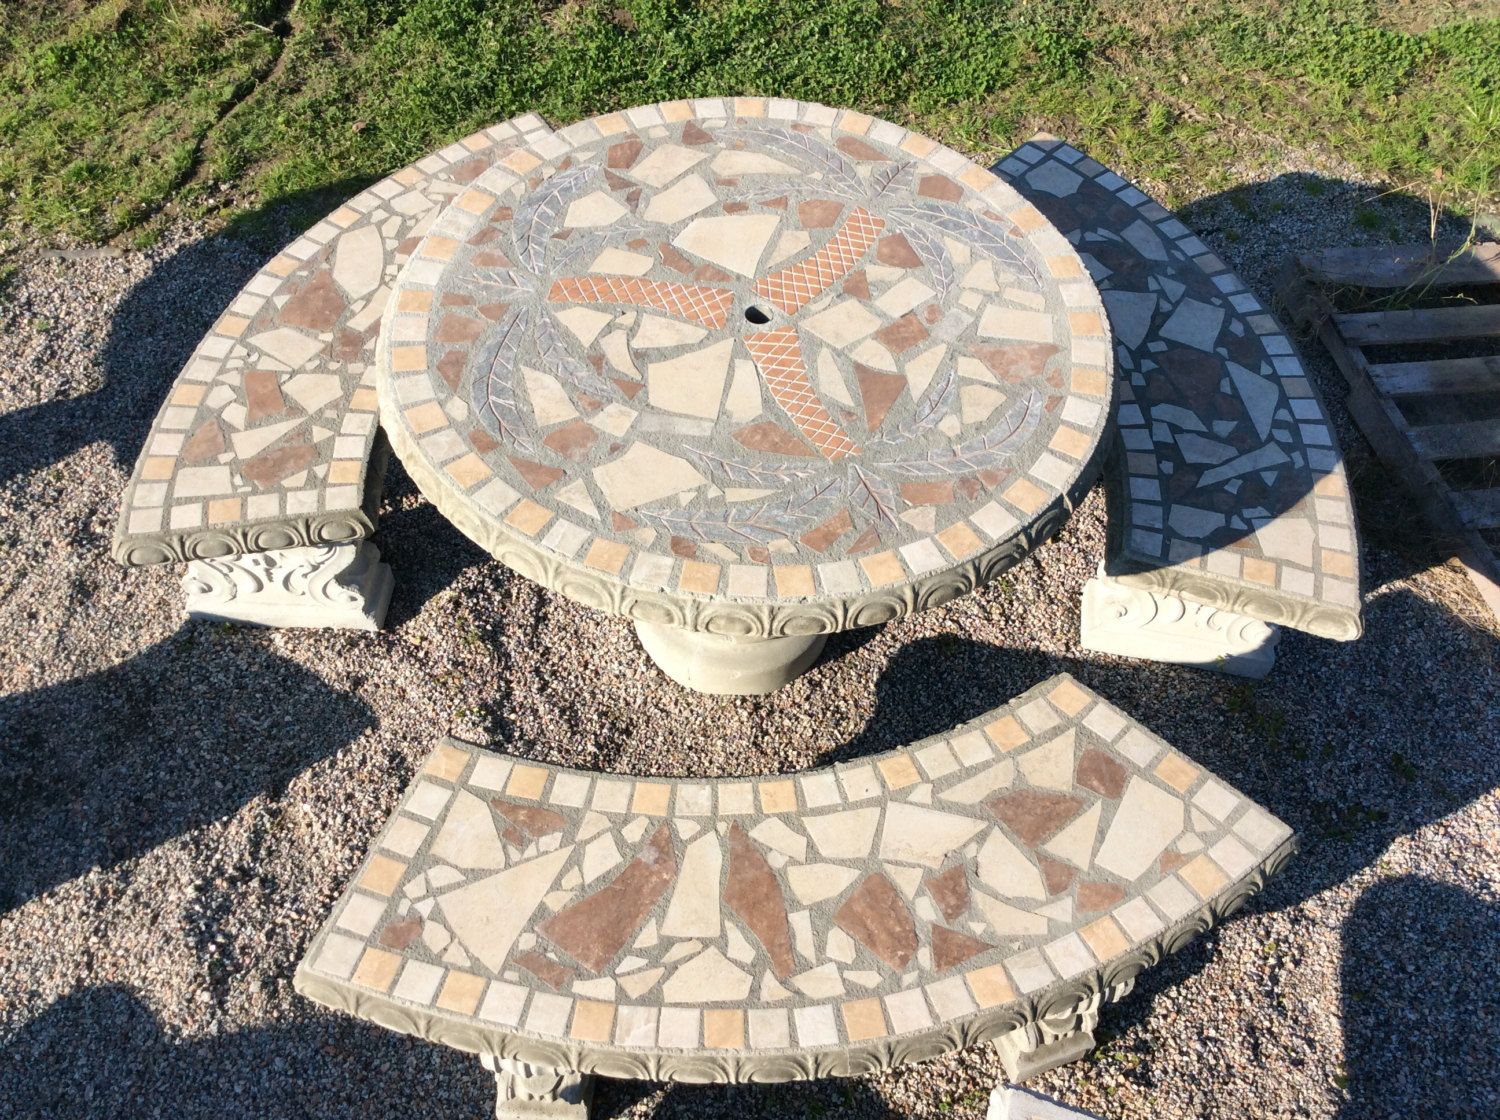 Patio Set Patio Table Outdoor Tables Mosiac Table Palm Tree - Round concrete table with benches